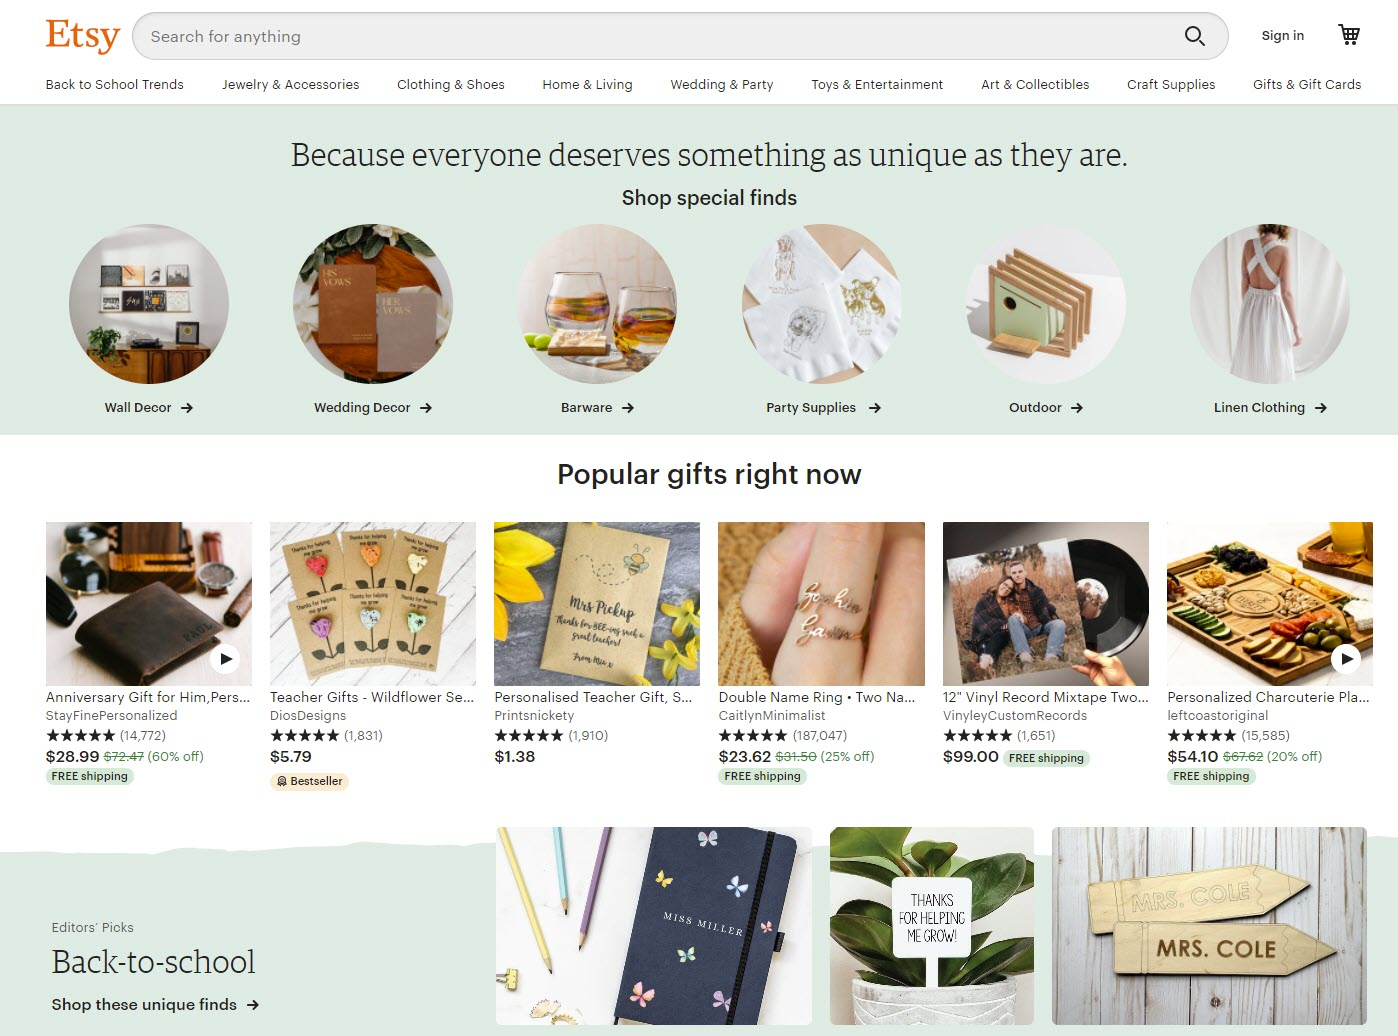 Etsy Coupon Codes and Gift Cards - September 2021